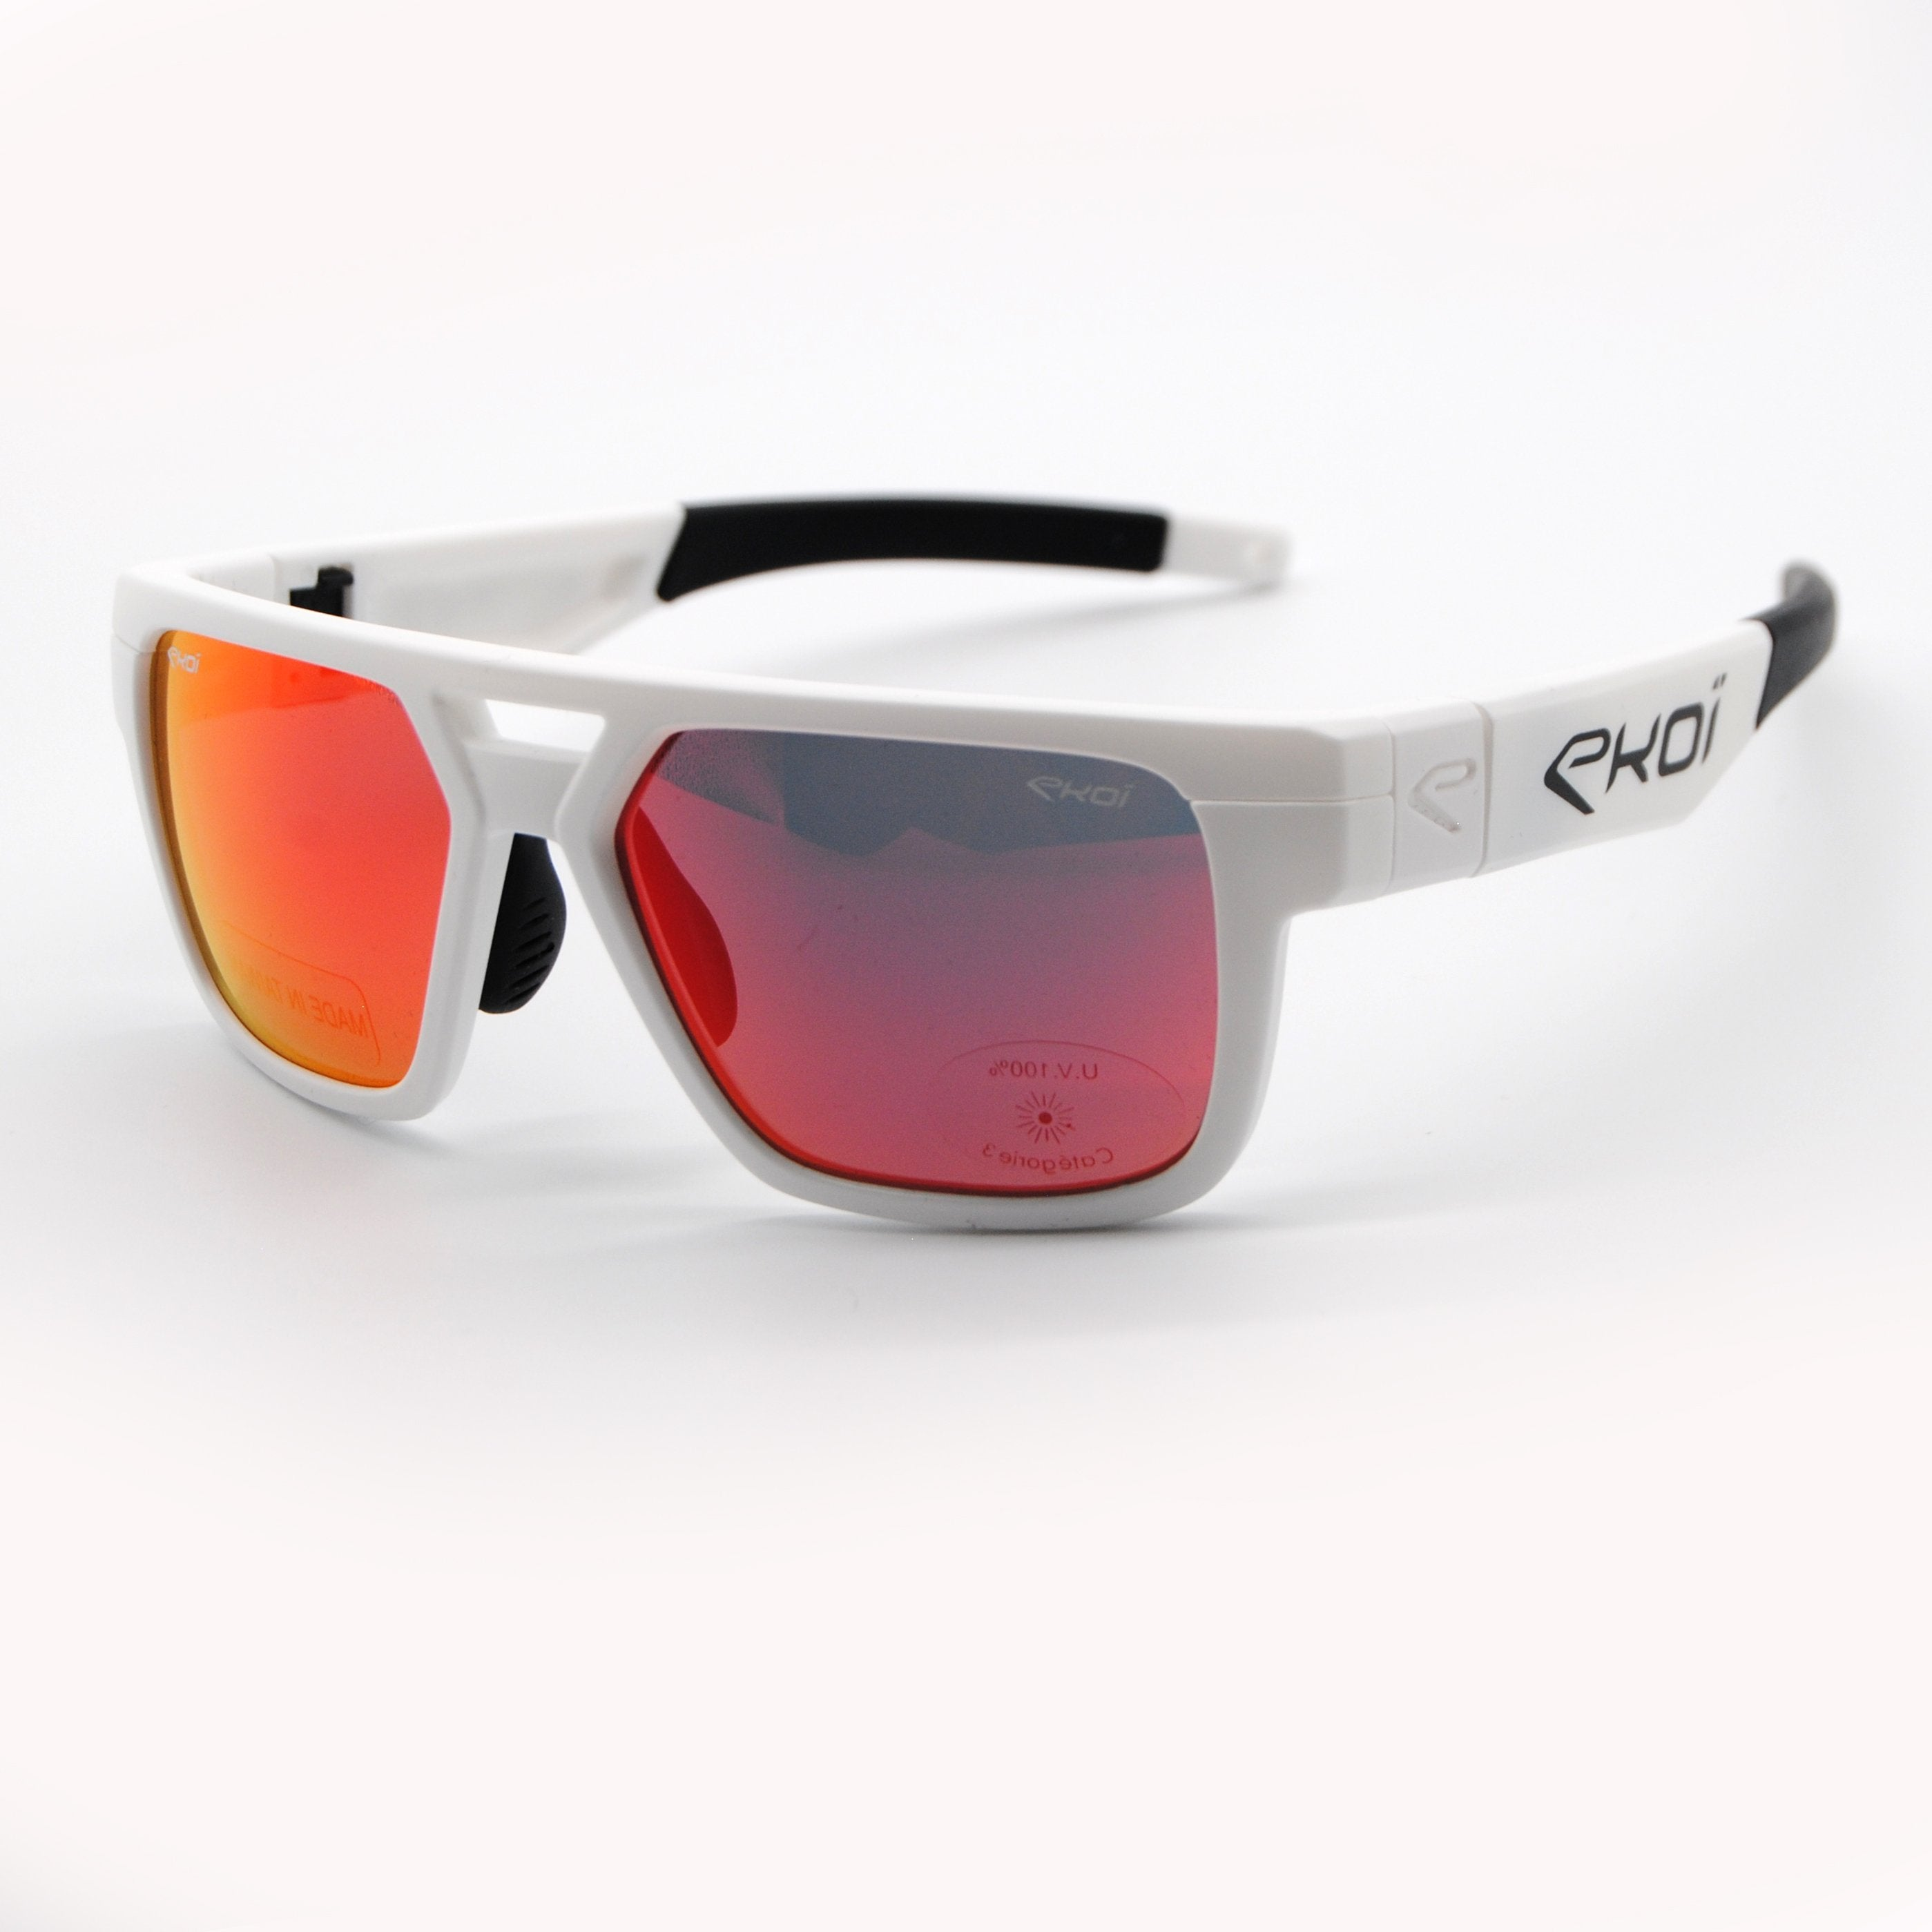 EKOI SPORT FASHION SUNGLASSES WHITE RED